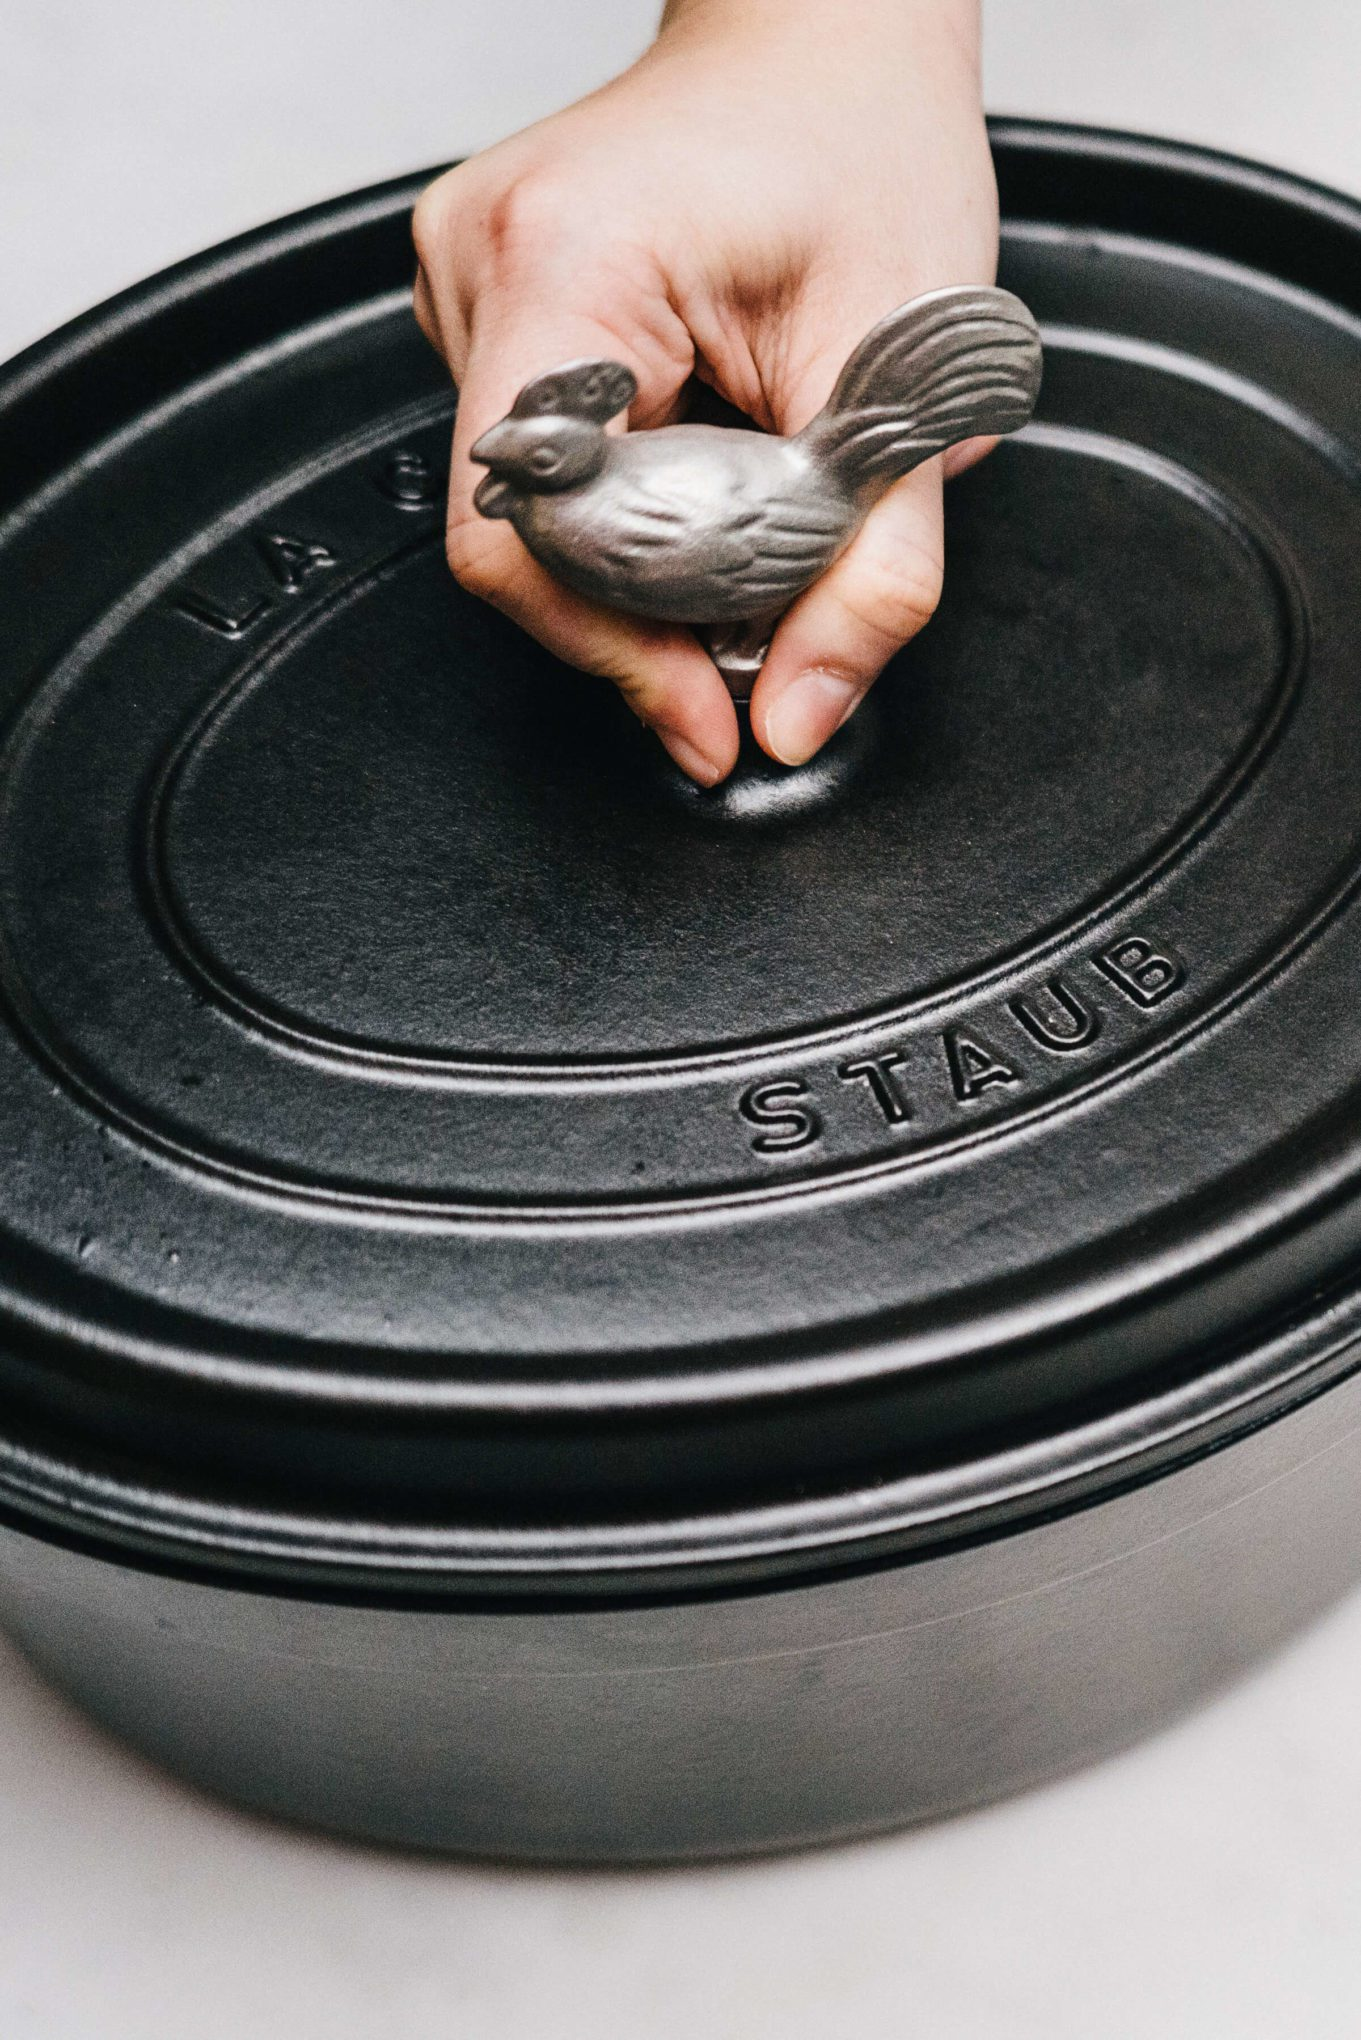 Staub Coq Au Vin with enamel coating is perfect to keep things warm and cook evenly